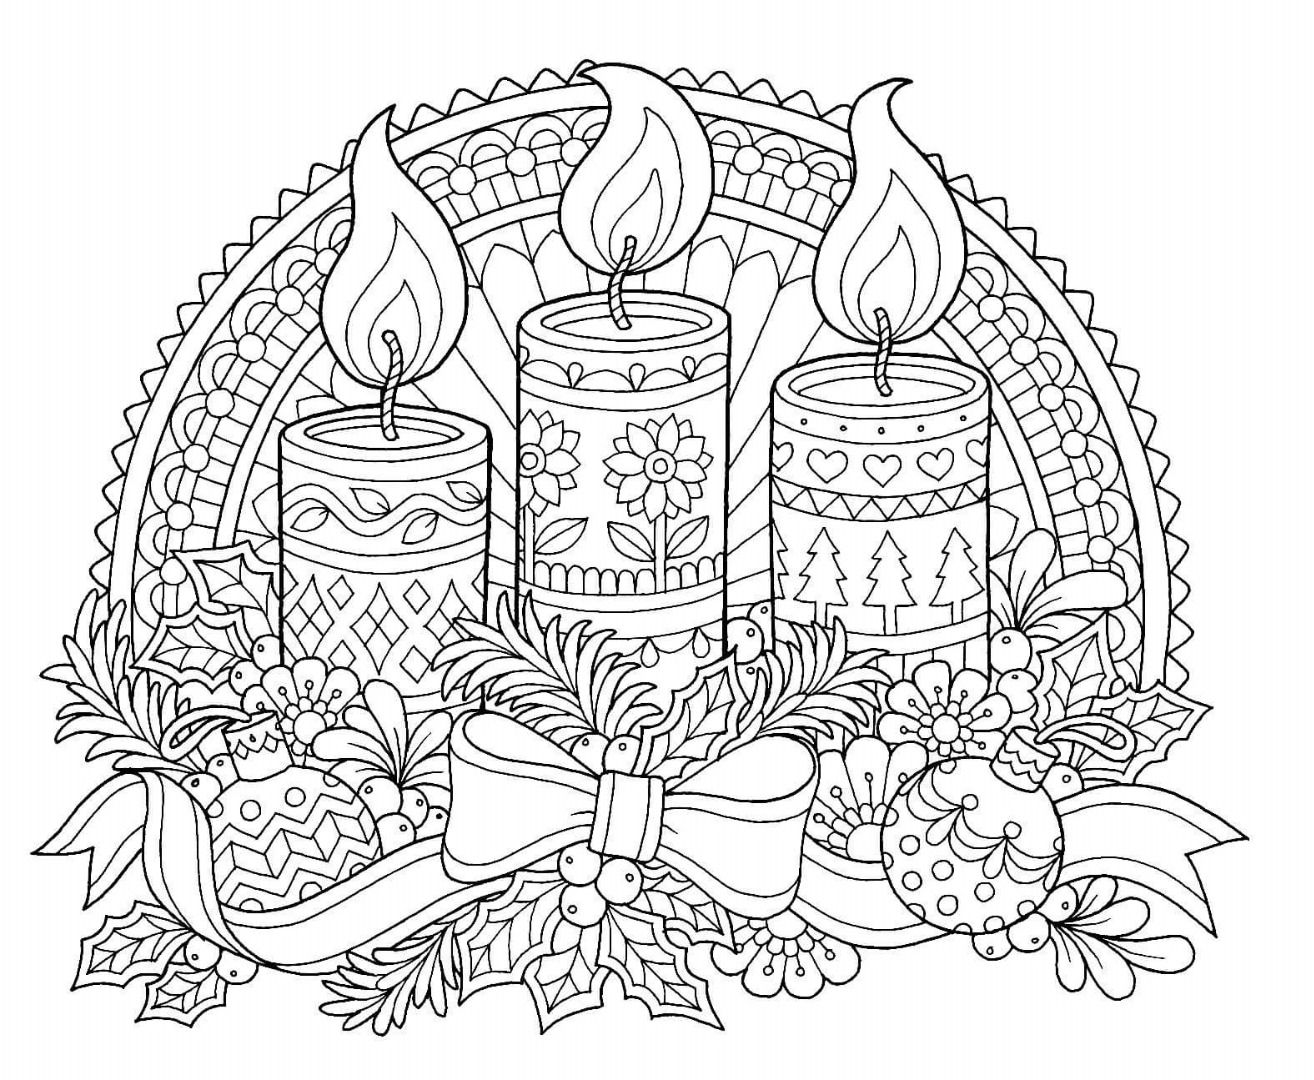 Christmas Candles Coloring Page Free Christmas Coloring Pages Christmas Coloring Sheets Christmas Coloring Pages